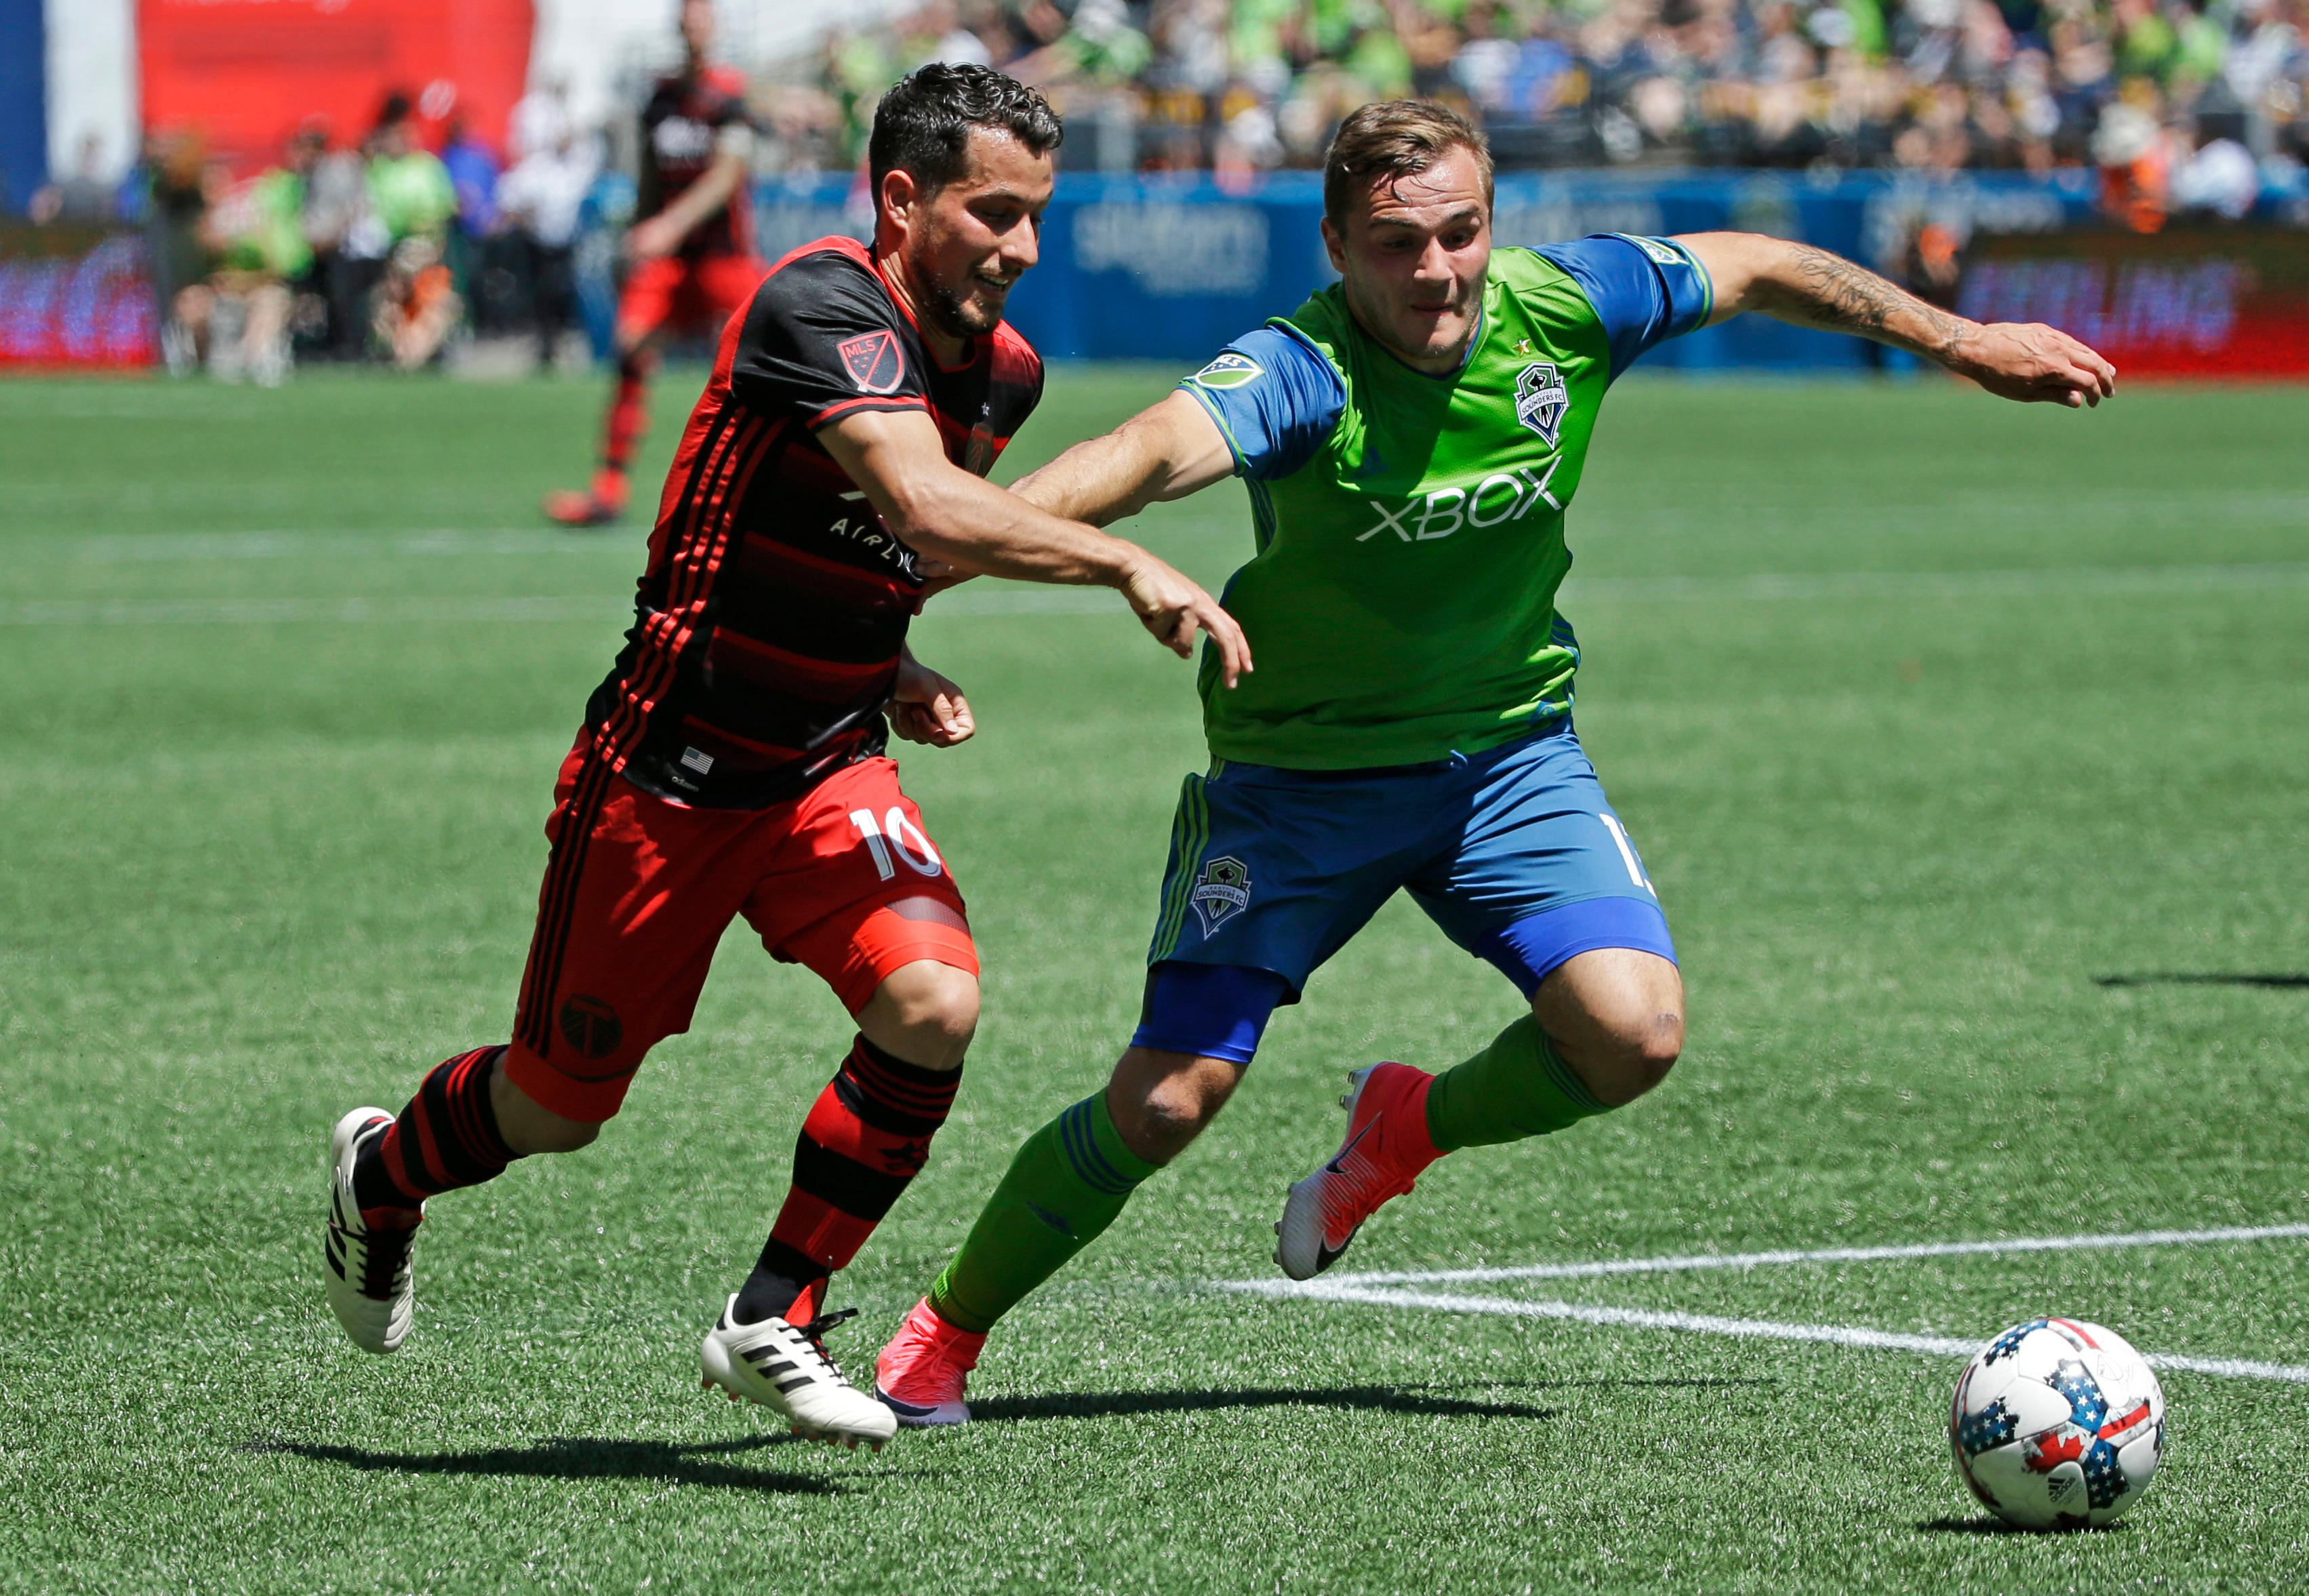 Seattle Sounders forward Jordan Morris, right, challenges Portland Timbers' midfielder Sebastian Blanco, left, in the first half of an MLS soccer match, Saturday, May 27, 2017, in Seattle. (AP Photo/Ted S. Warren)